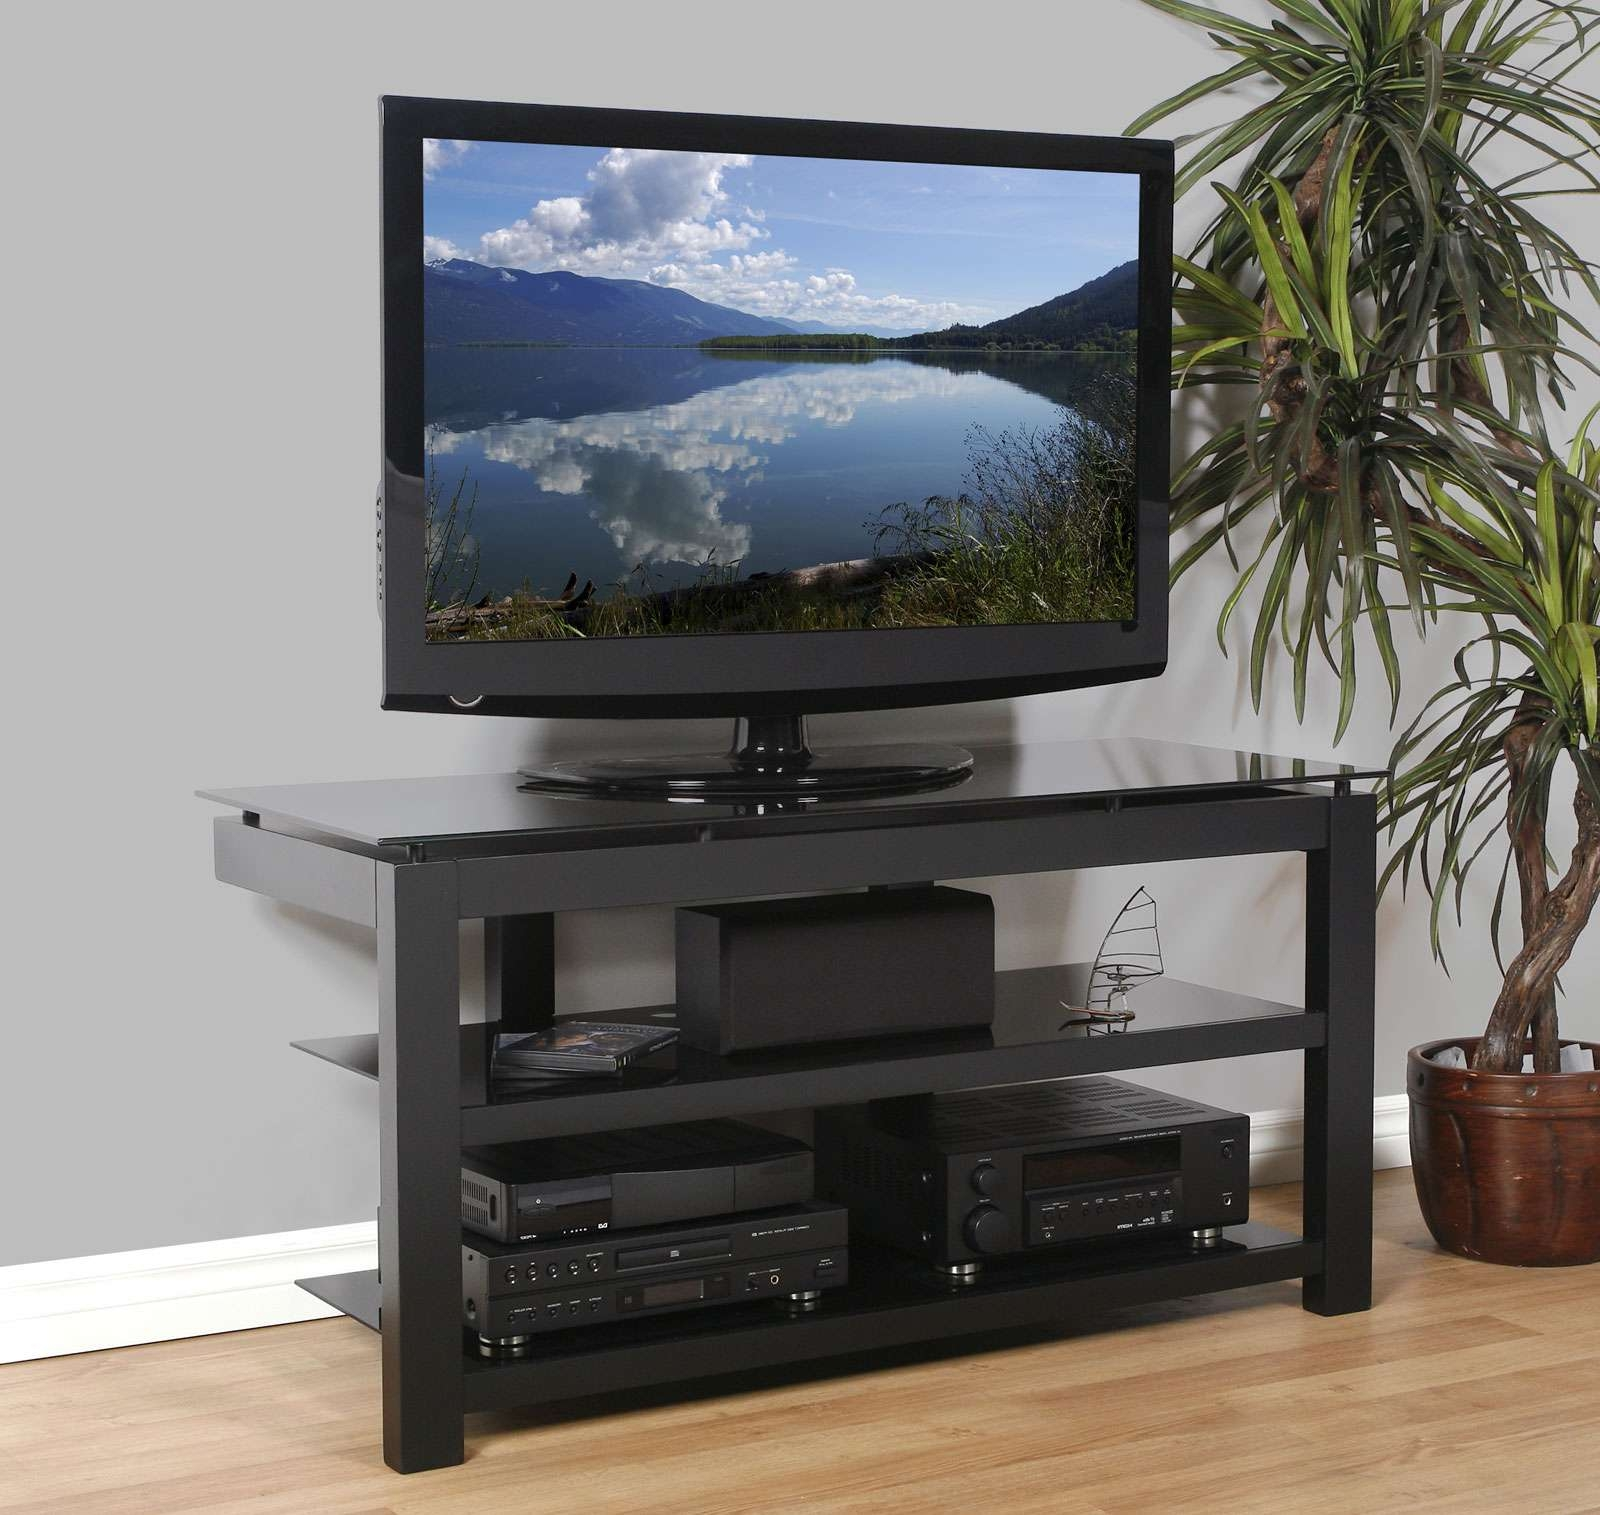 50 Inch Flat Screen Tv Stand – Natural Wood Veneers And Black Throughout Wood Tv Stands With Glass Top (Gallery 1 of 15)